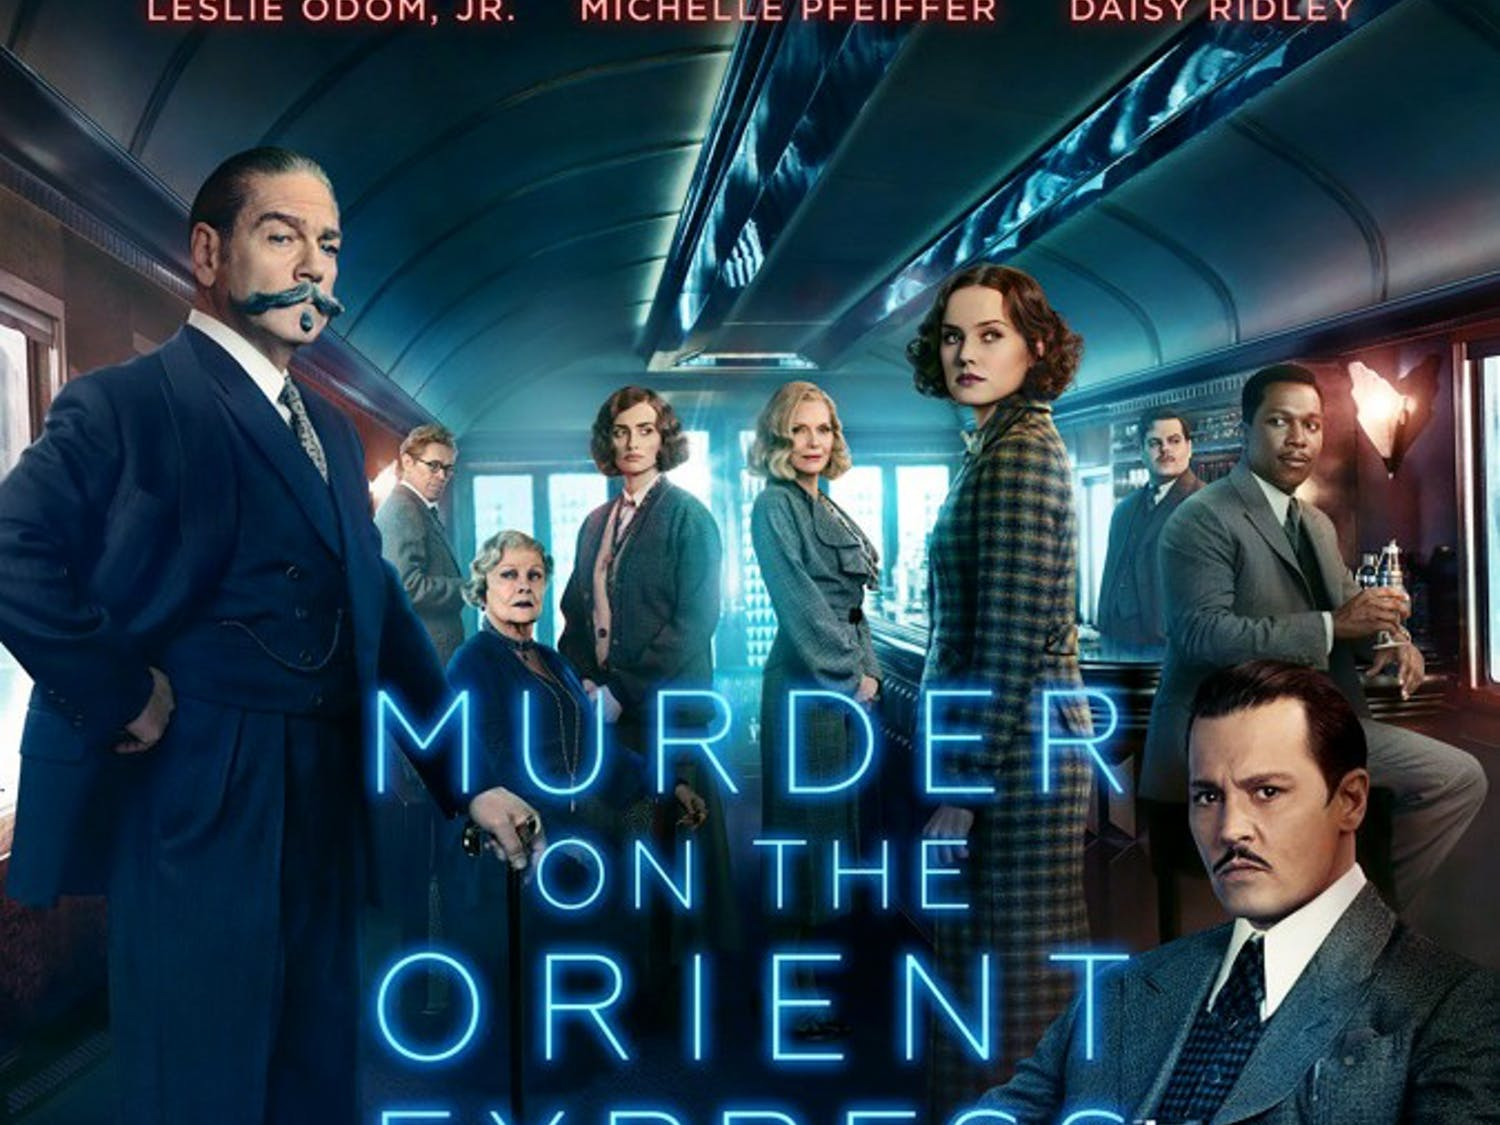 """""""Murder on the Orient Express,"""" directed by Kenneth Branagh, is an adaptation of Agatha Christie's novel and premieres Nov. 10. November will see the release of two of the year's biggest films: """"Thor: Ragnarok"""" and """"Justice League."""""""